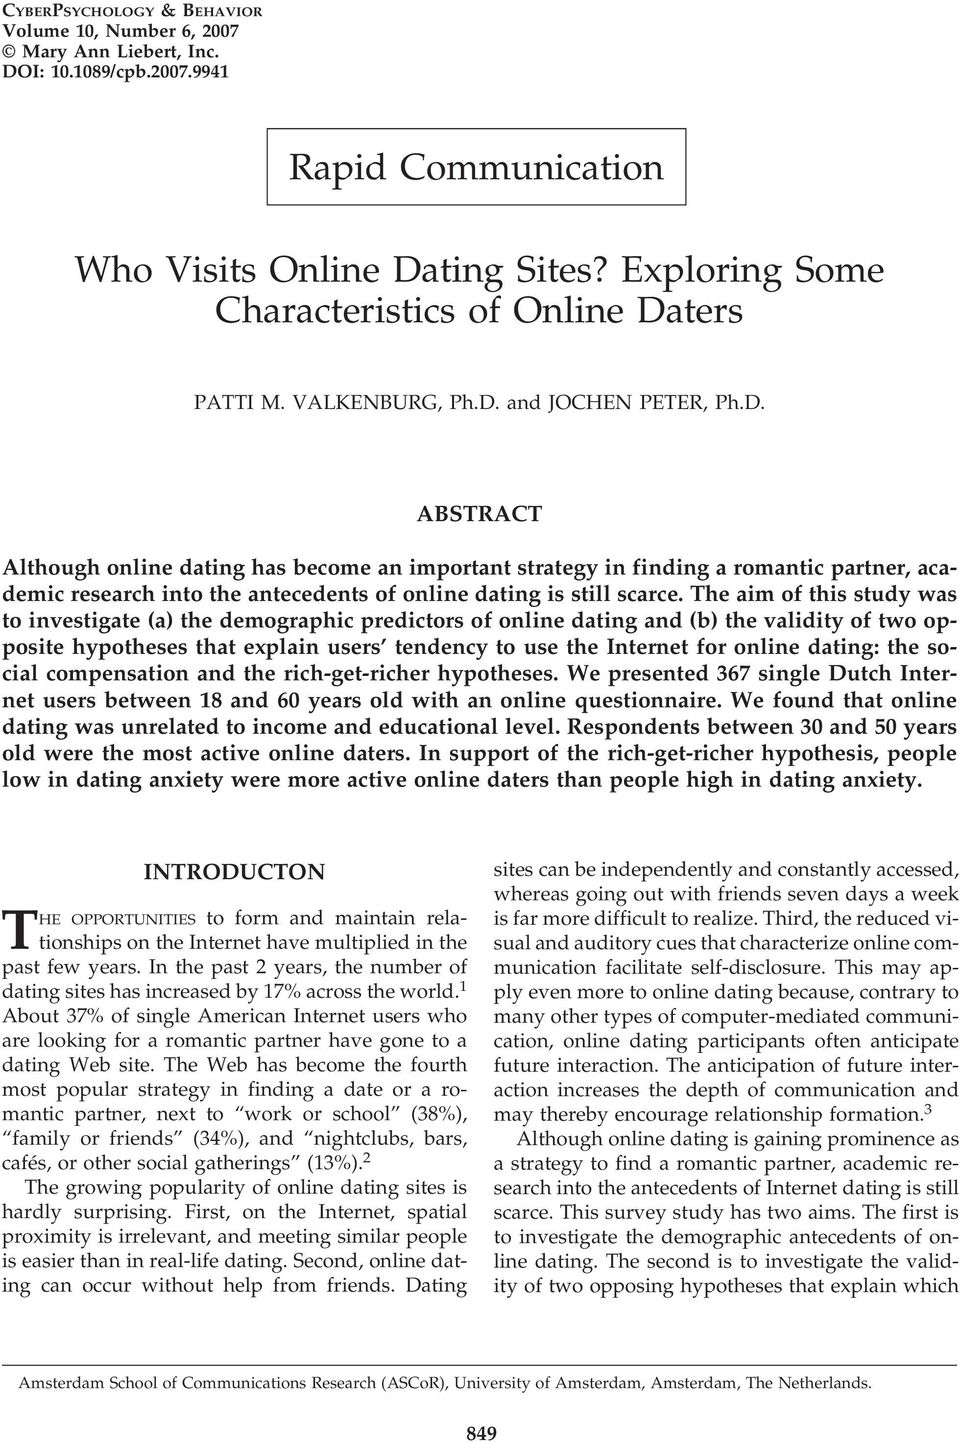 ters PATTI M. VALKENBURG, Ph.D. and JOCHEN PETER, Ph.D. ABSTRACT Although online dating has become an important strategy in finding a romantic partner, academic research into the antecedents of online dating is still scarce.